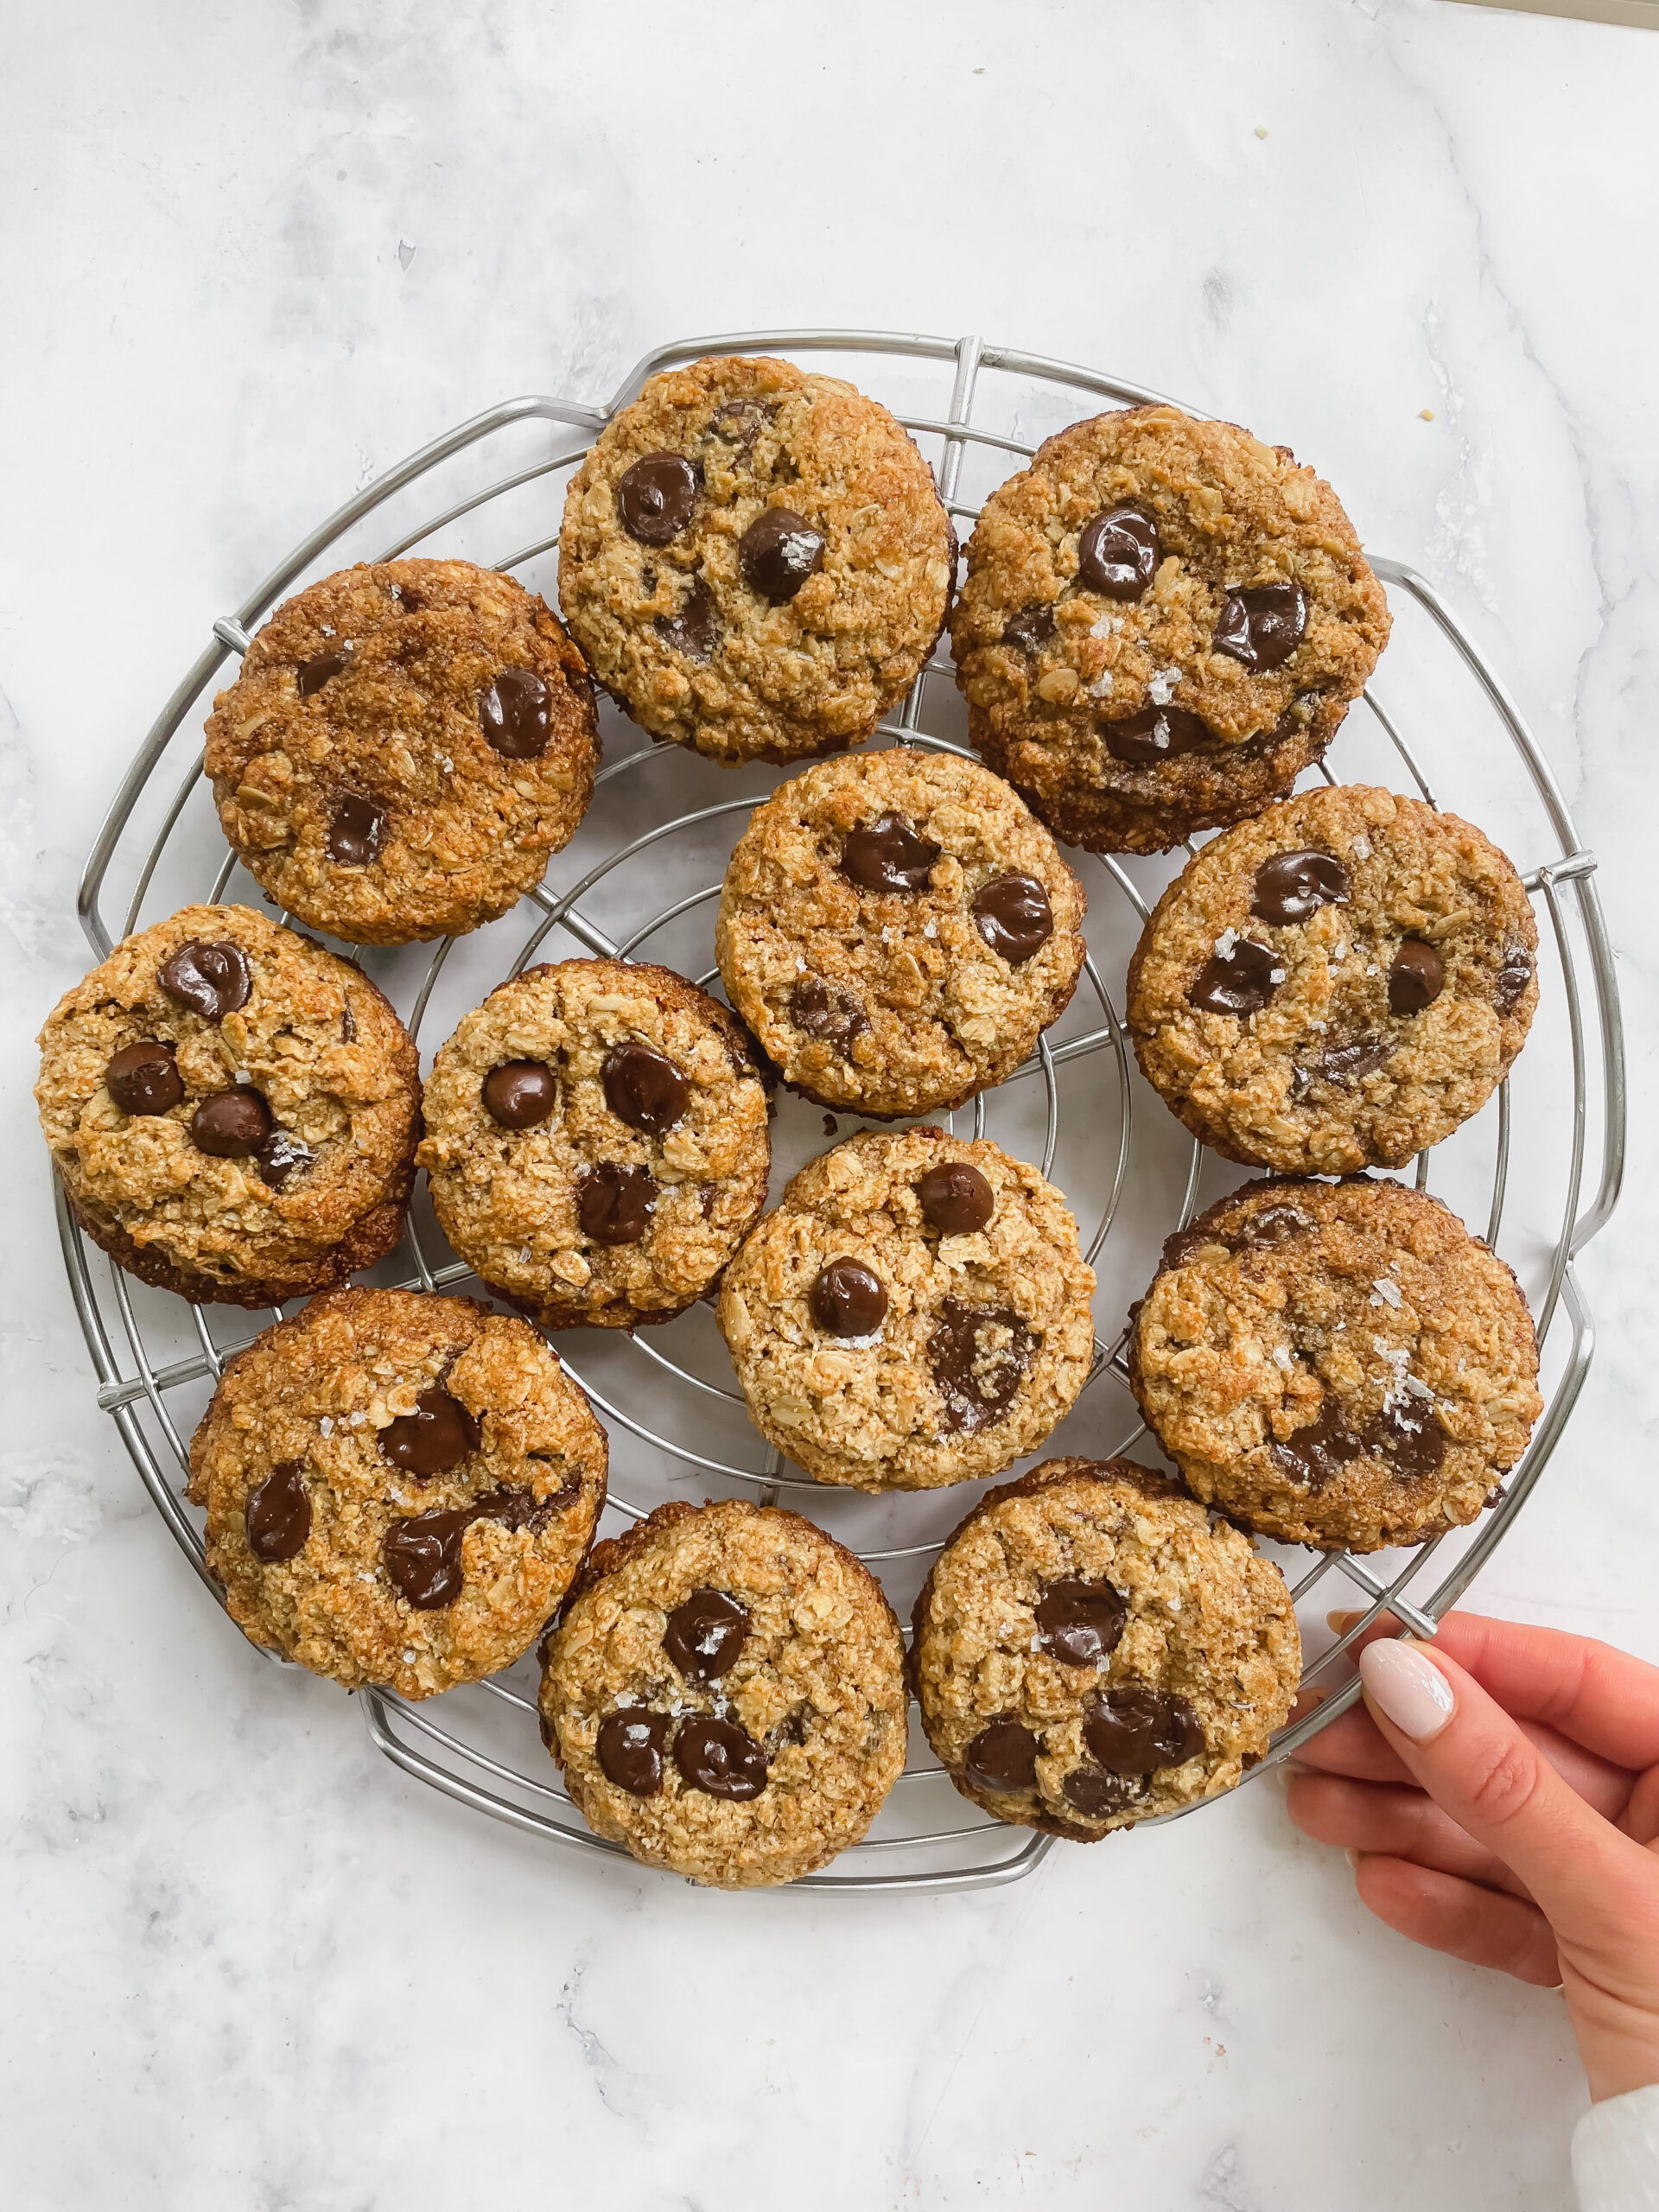 Chewy Pumpkin Chocolate Chip Oatmeal Cookies (Gluten Free, Dairy Free, Refined Sugar Free)